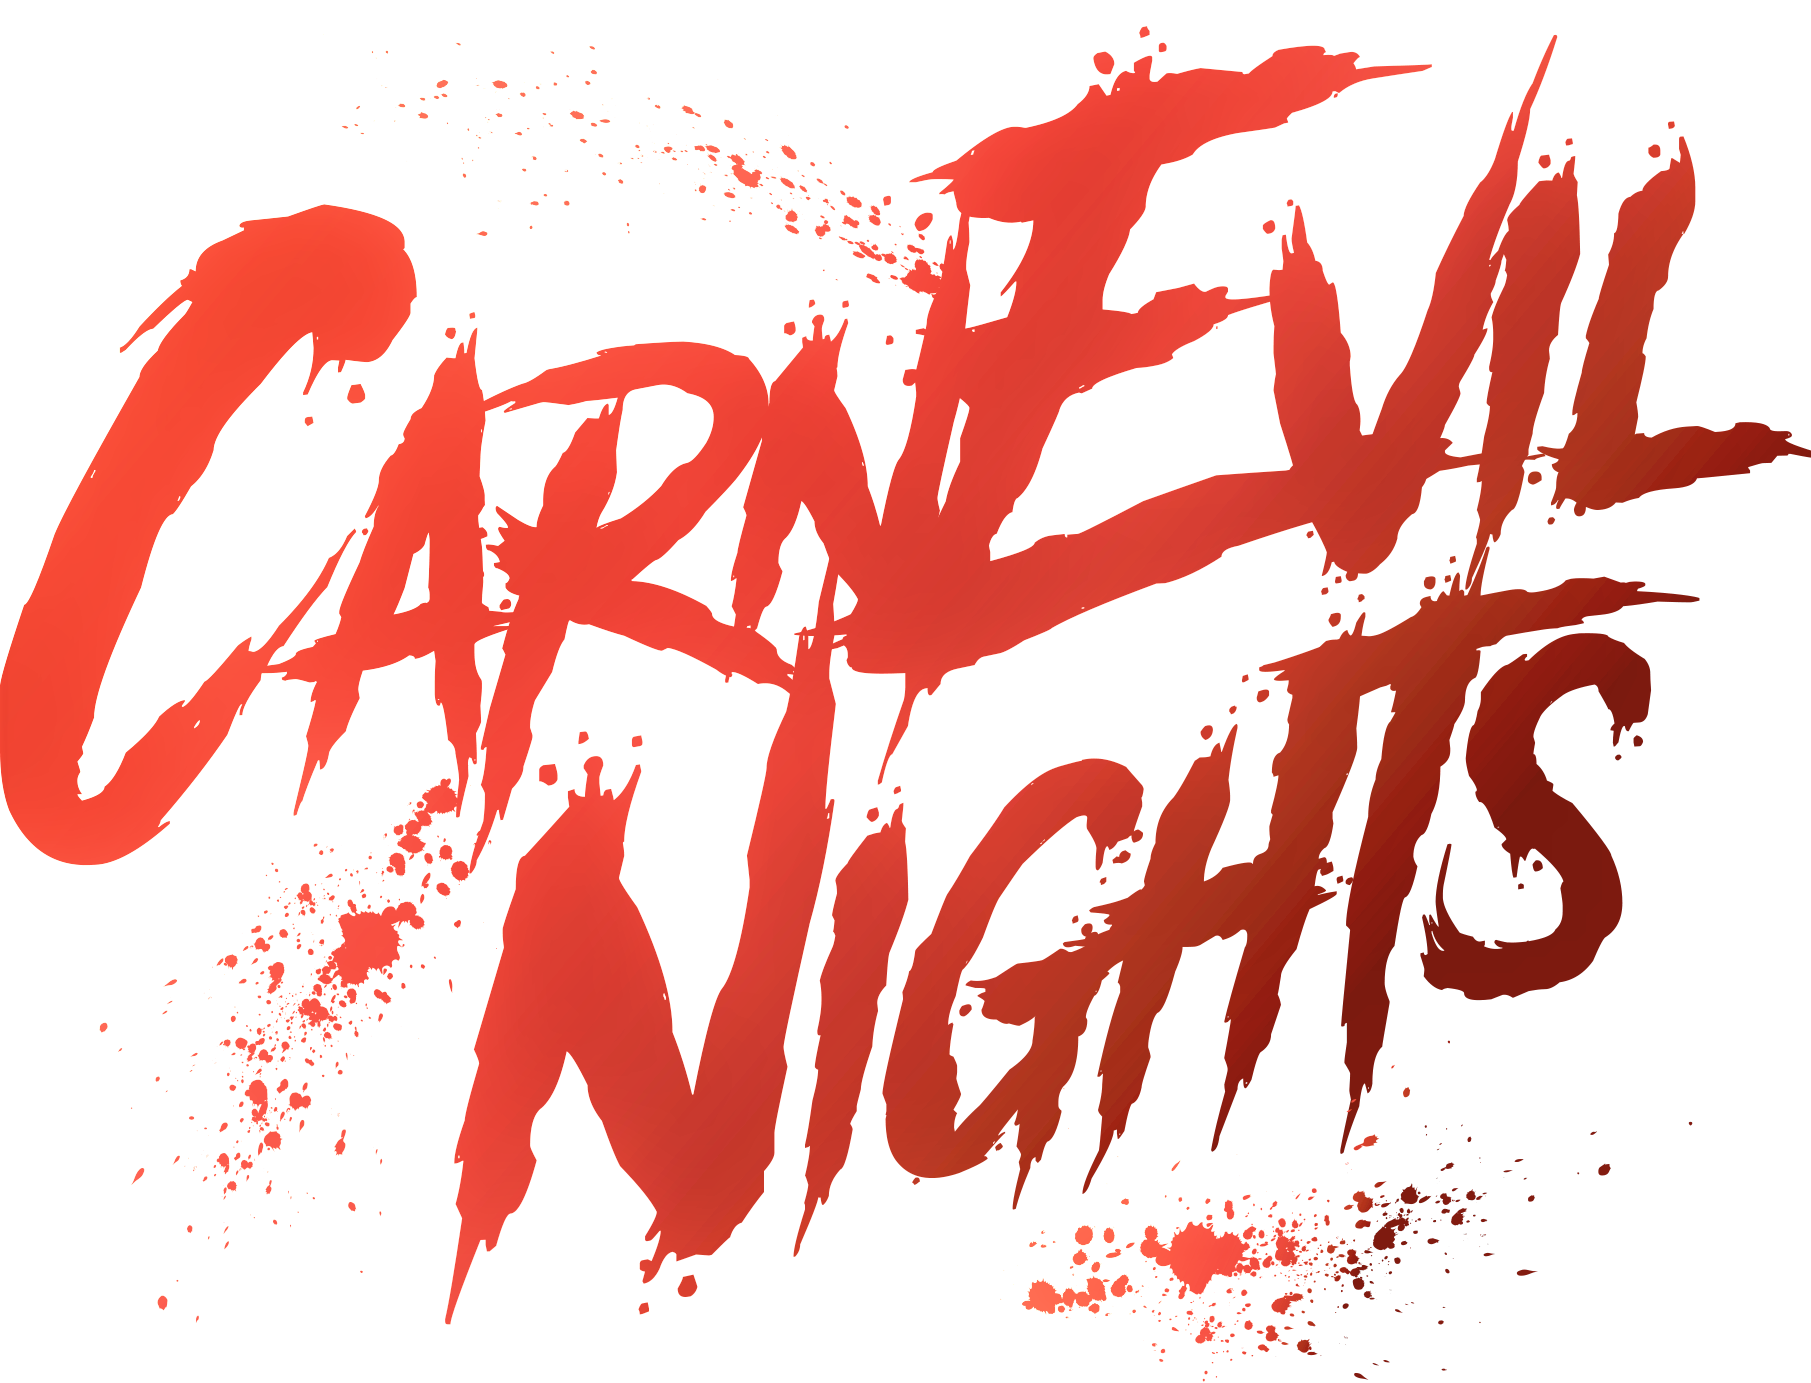 RAS825_CarnEvil Nights LOGO_FA_MAY2019C v2